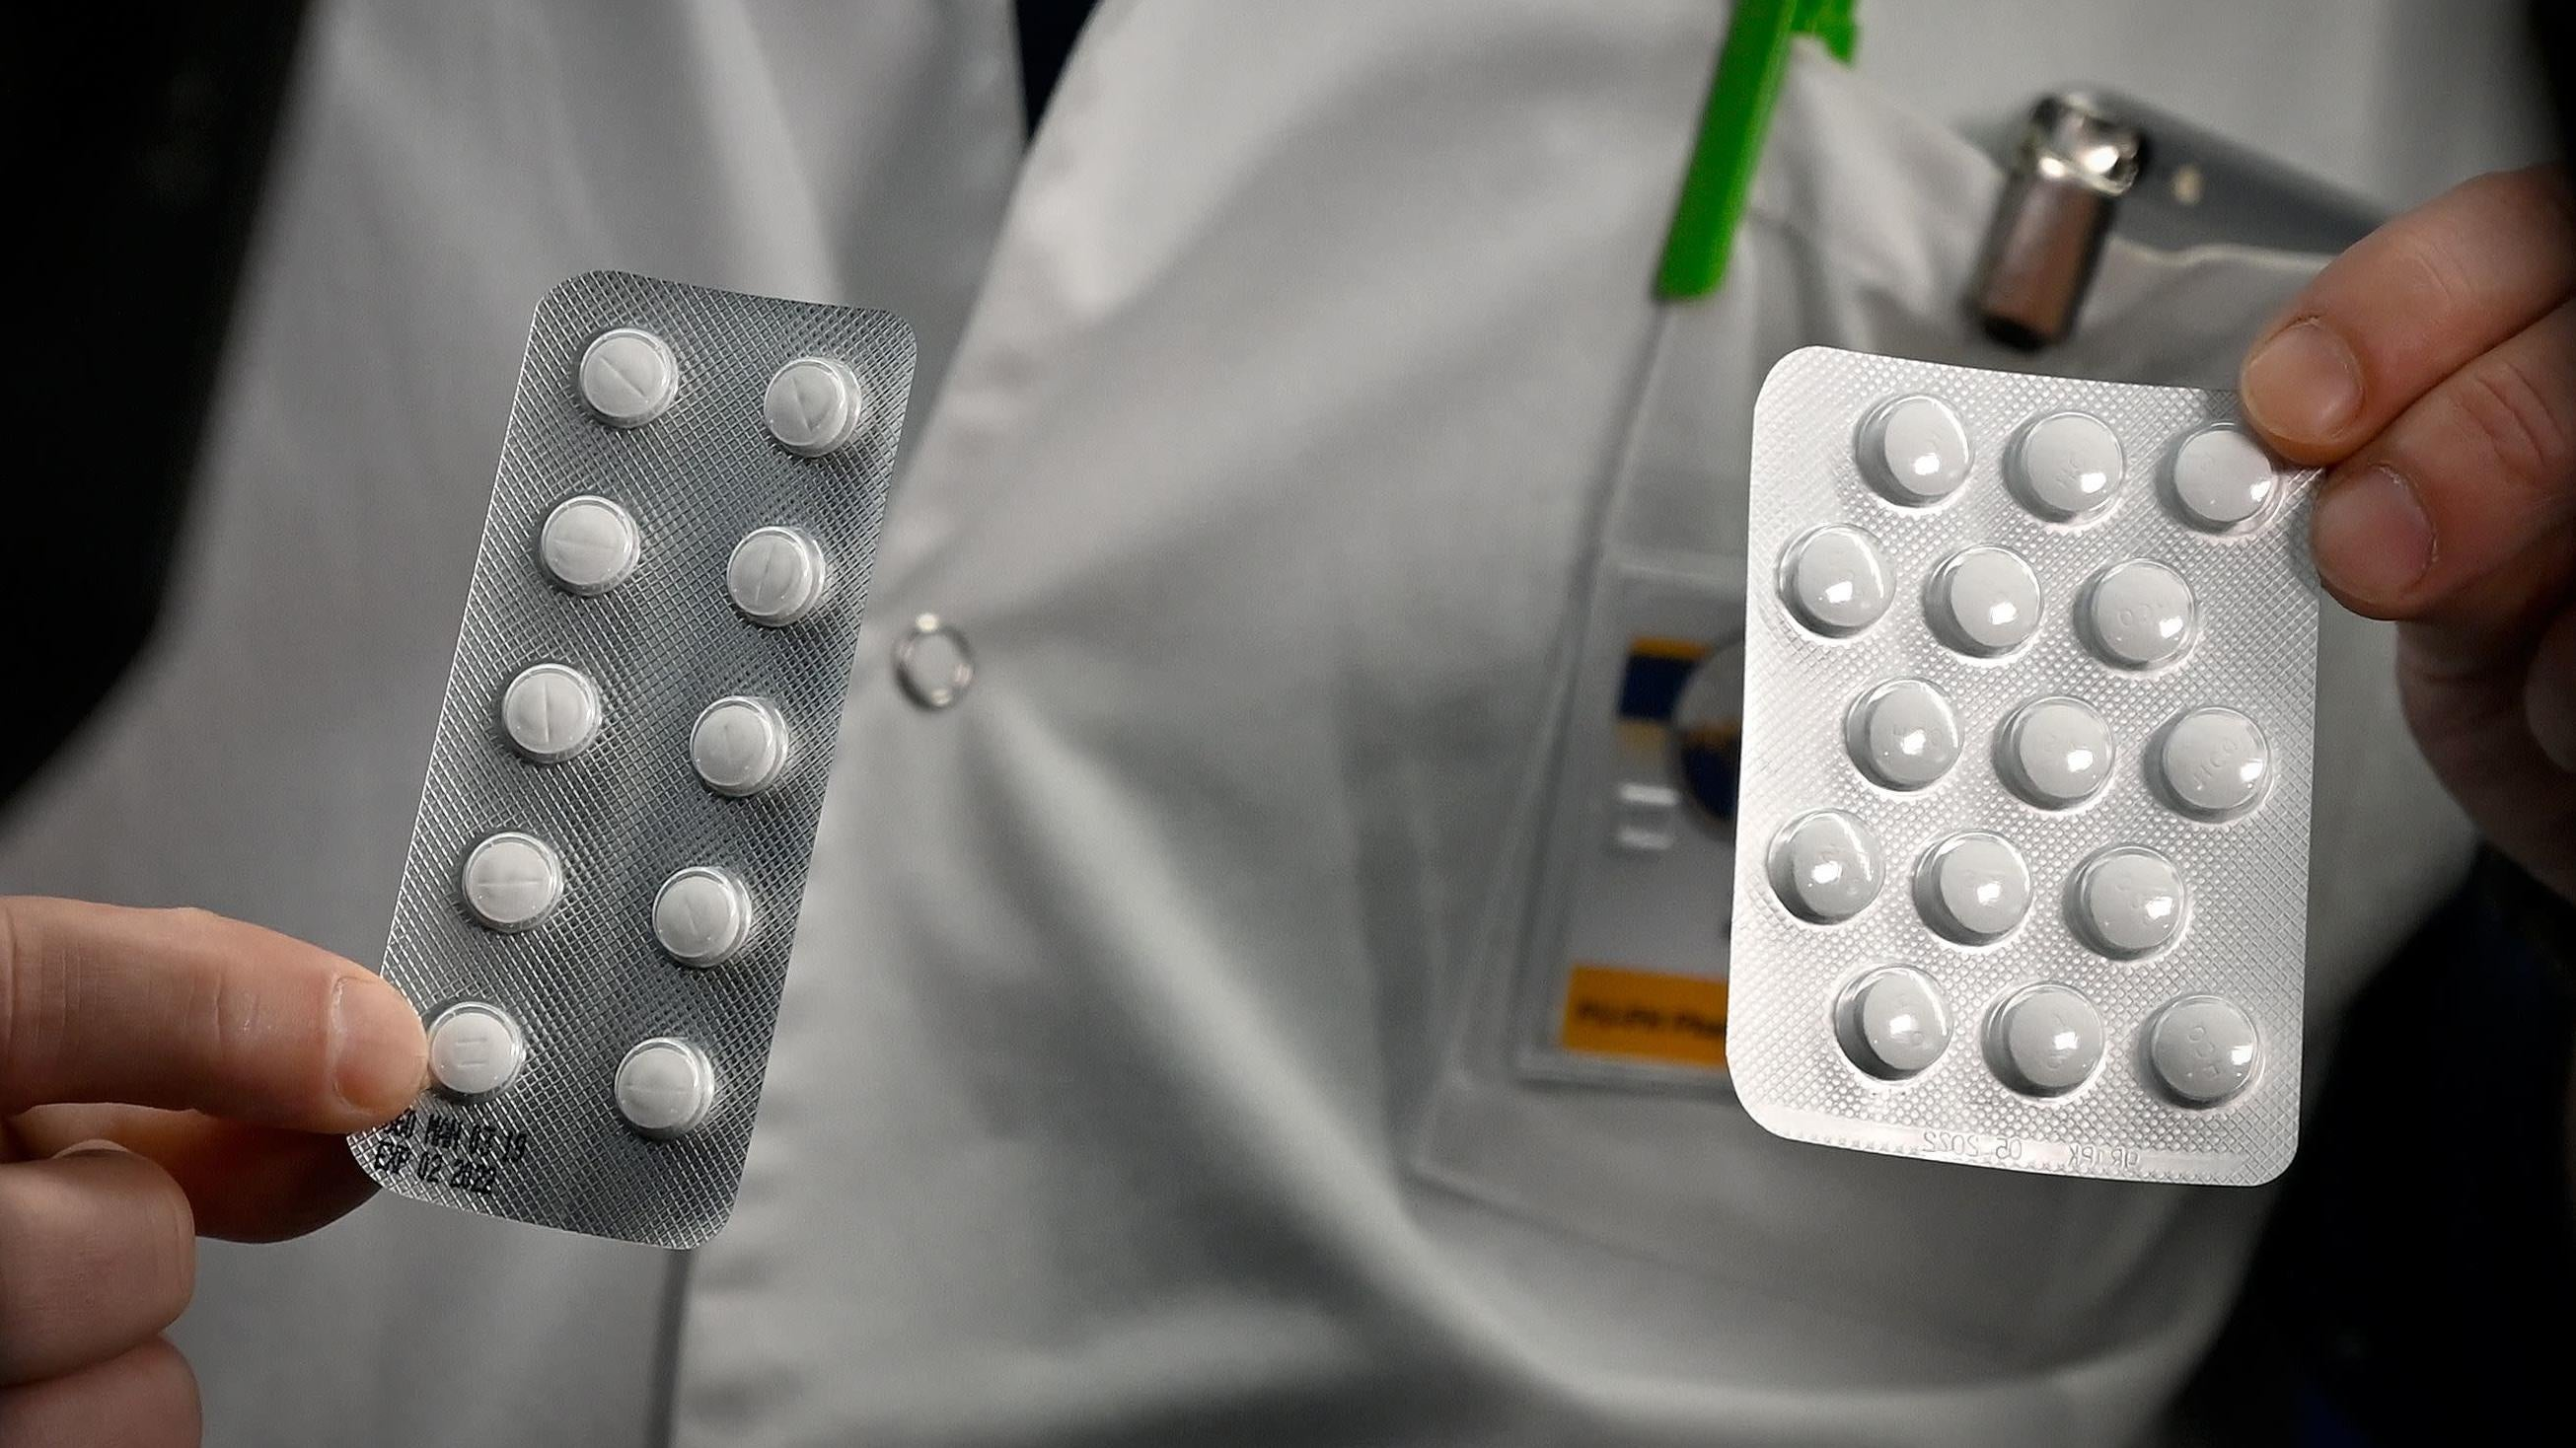 Top US Vaccine Official Says He Was Demoted For Pushing For More Science On Hydroxychloroquine